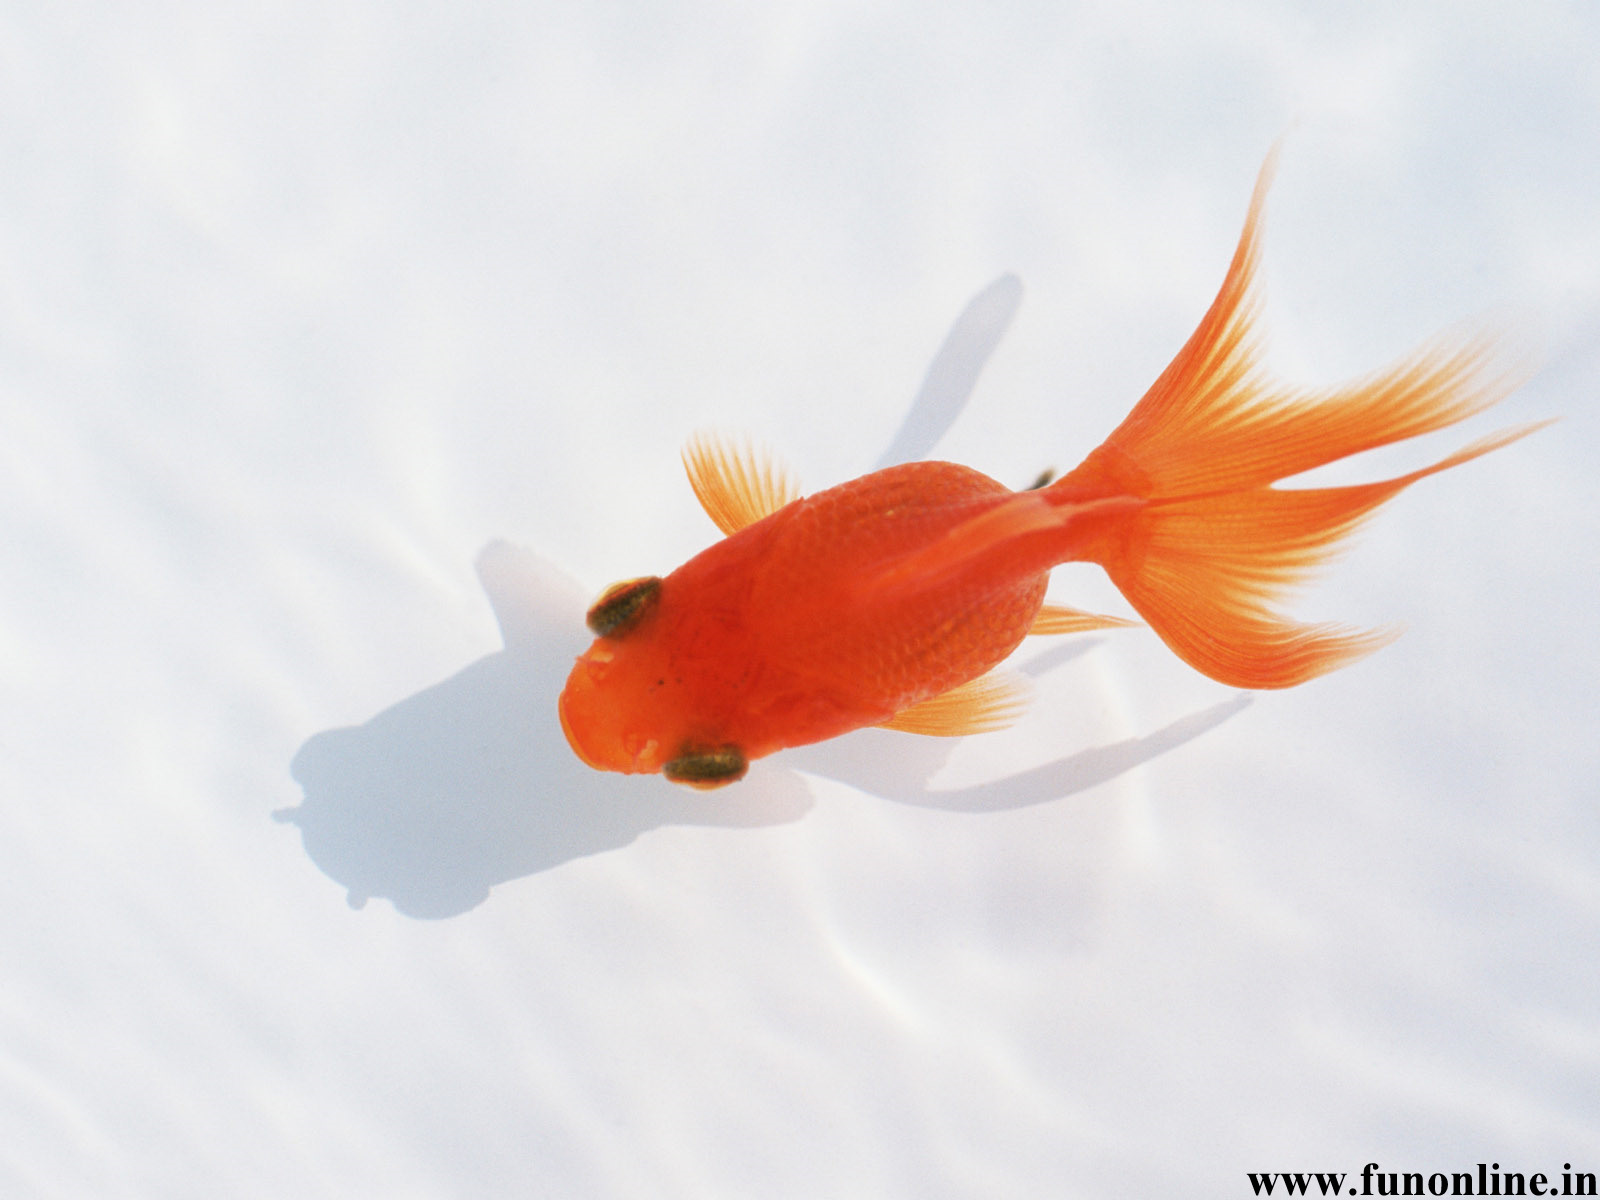 Goldfish Wallpapers Download Funny Kitten and Goldfishes Wallpaper 1600x1200